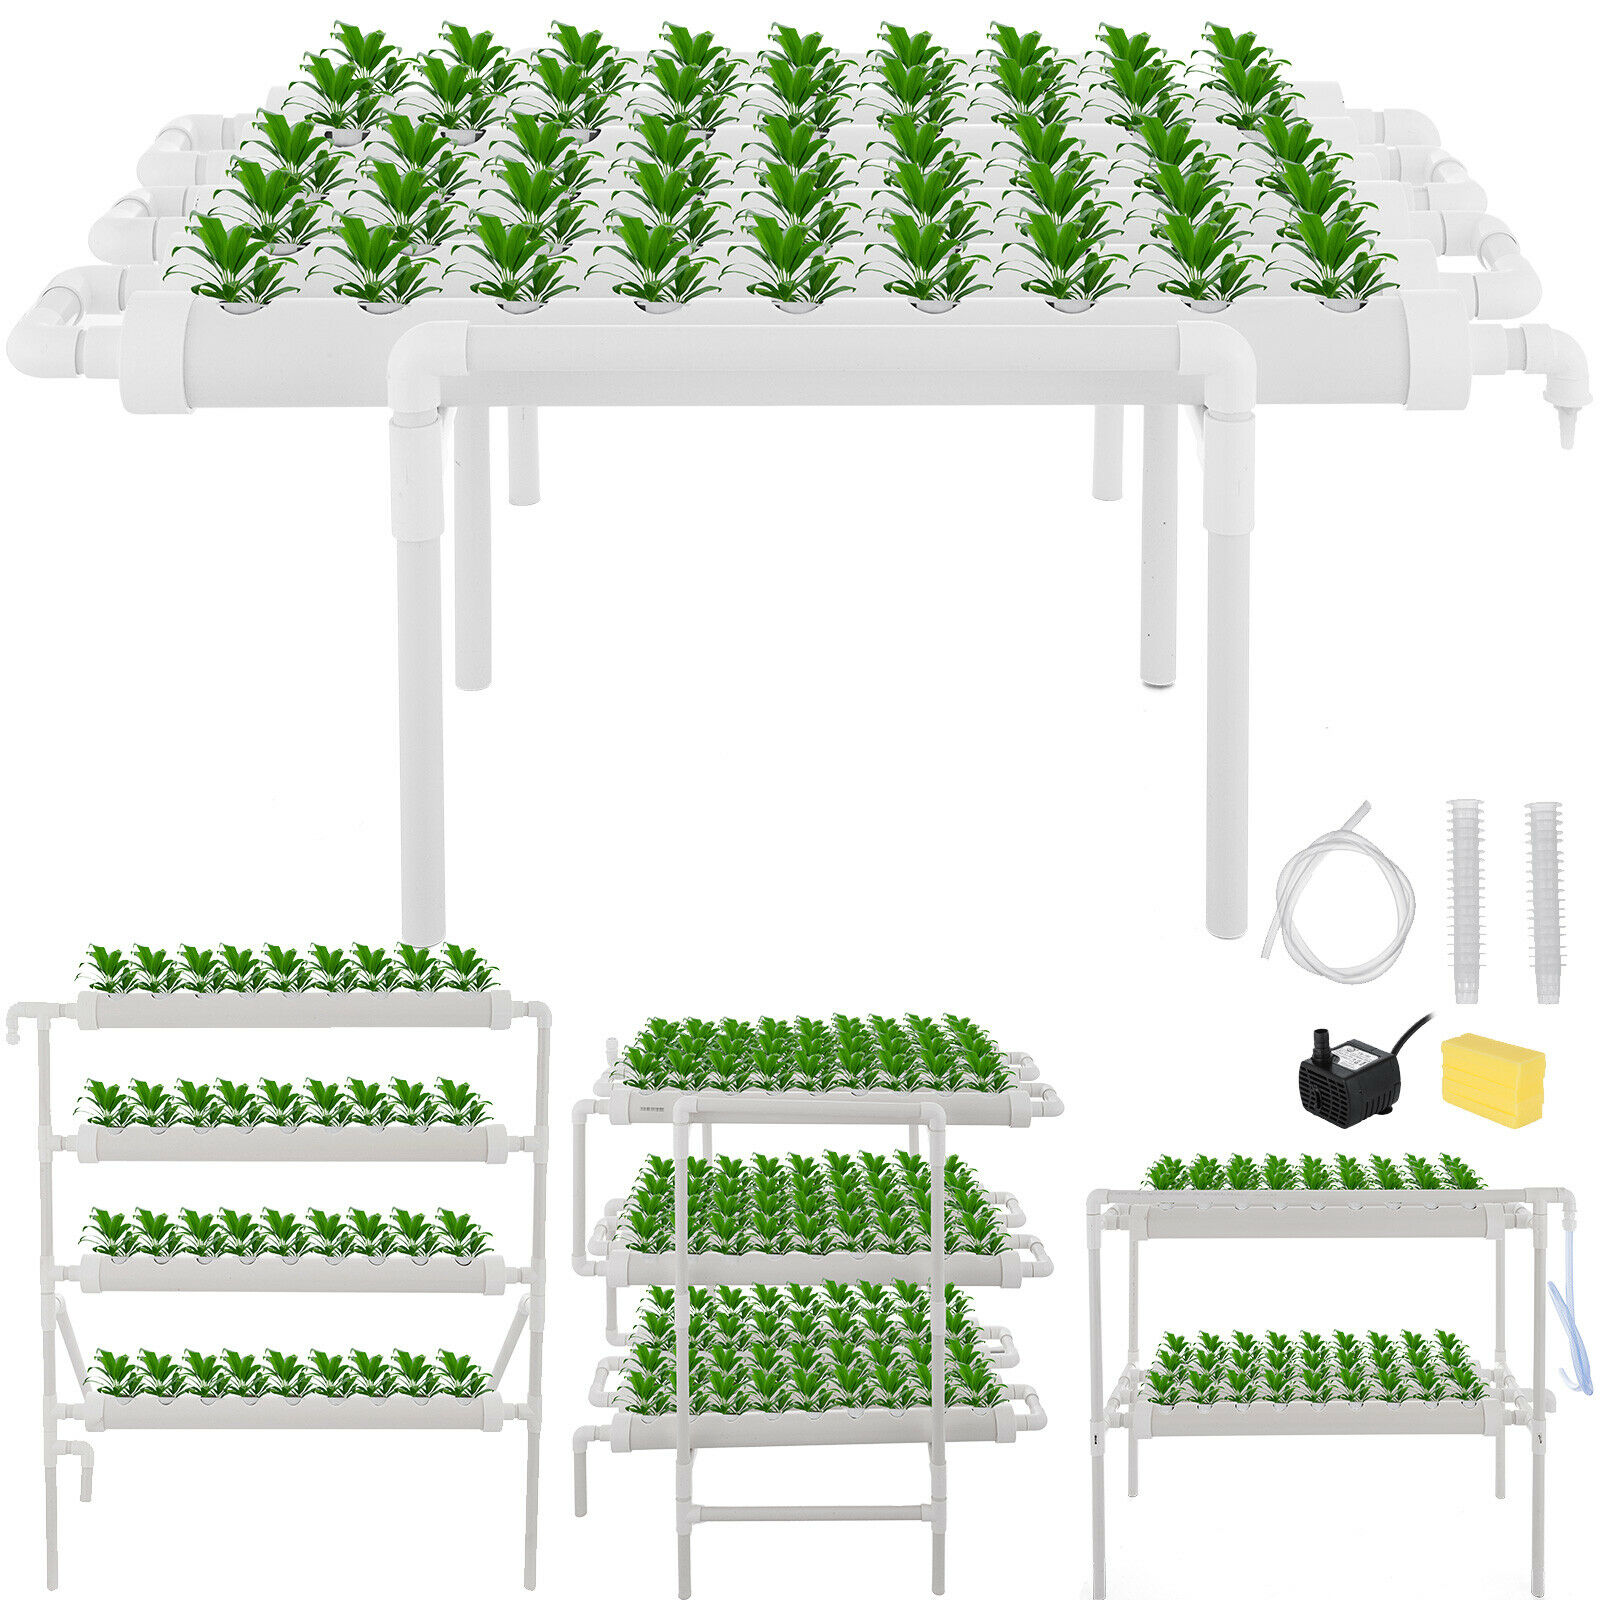 Hydroponic Grow Kit 12 Pipes 3 Layers Hydroponic Growing System 108 Plant Sites